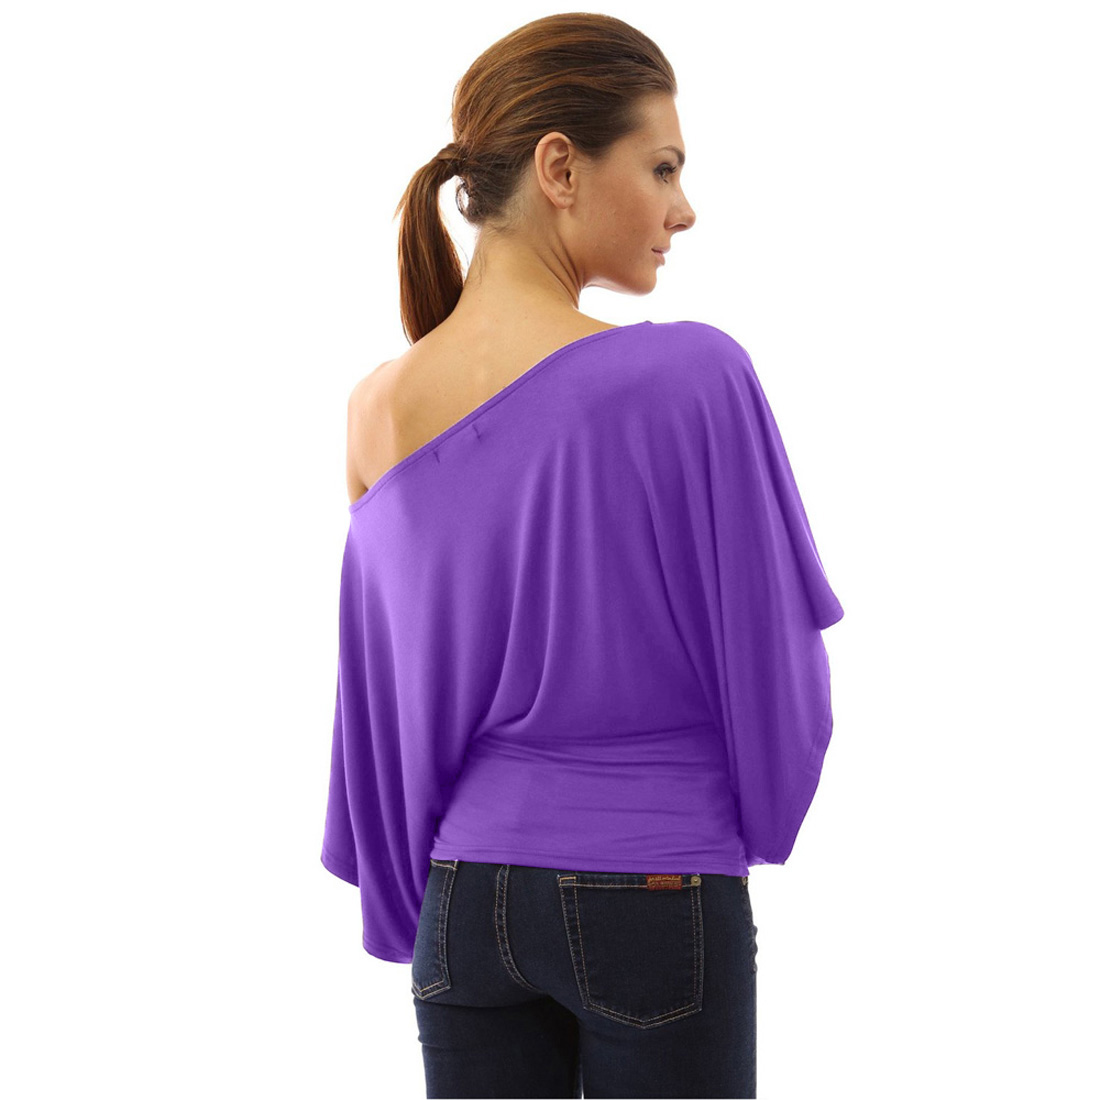 Creative Joanna U0026gt;Womenu0026#39;s Work Plain Blouses U0026 Shell Tops UK U0026gt;Women ...